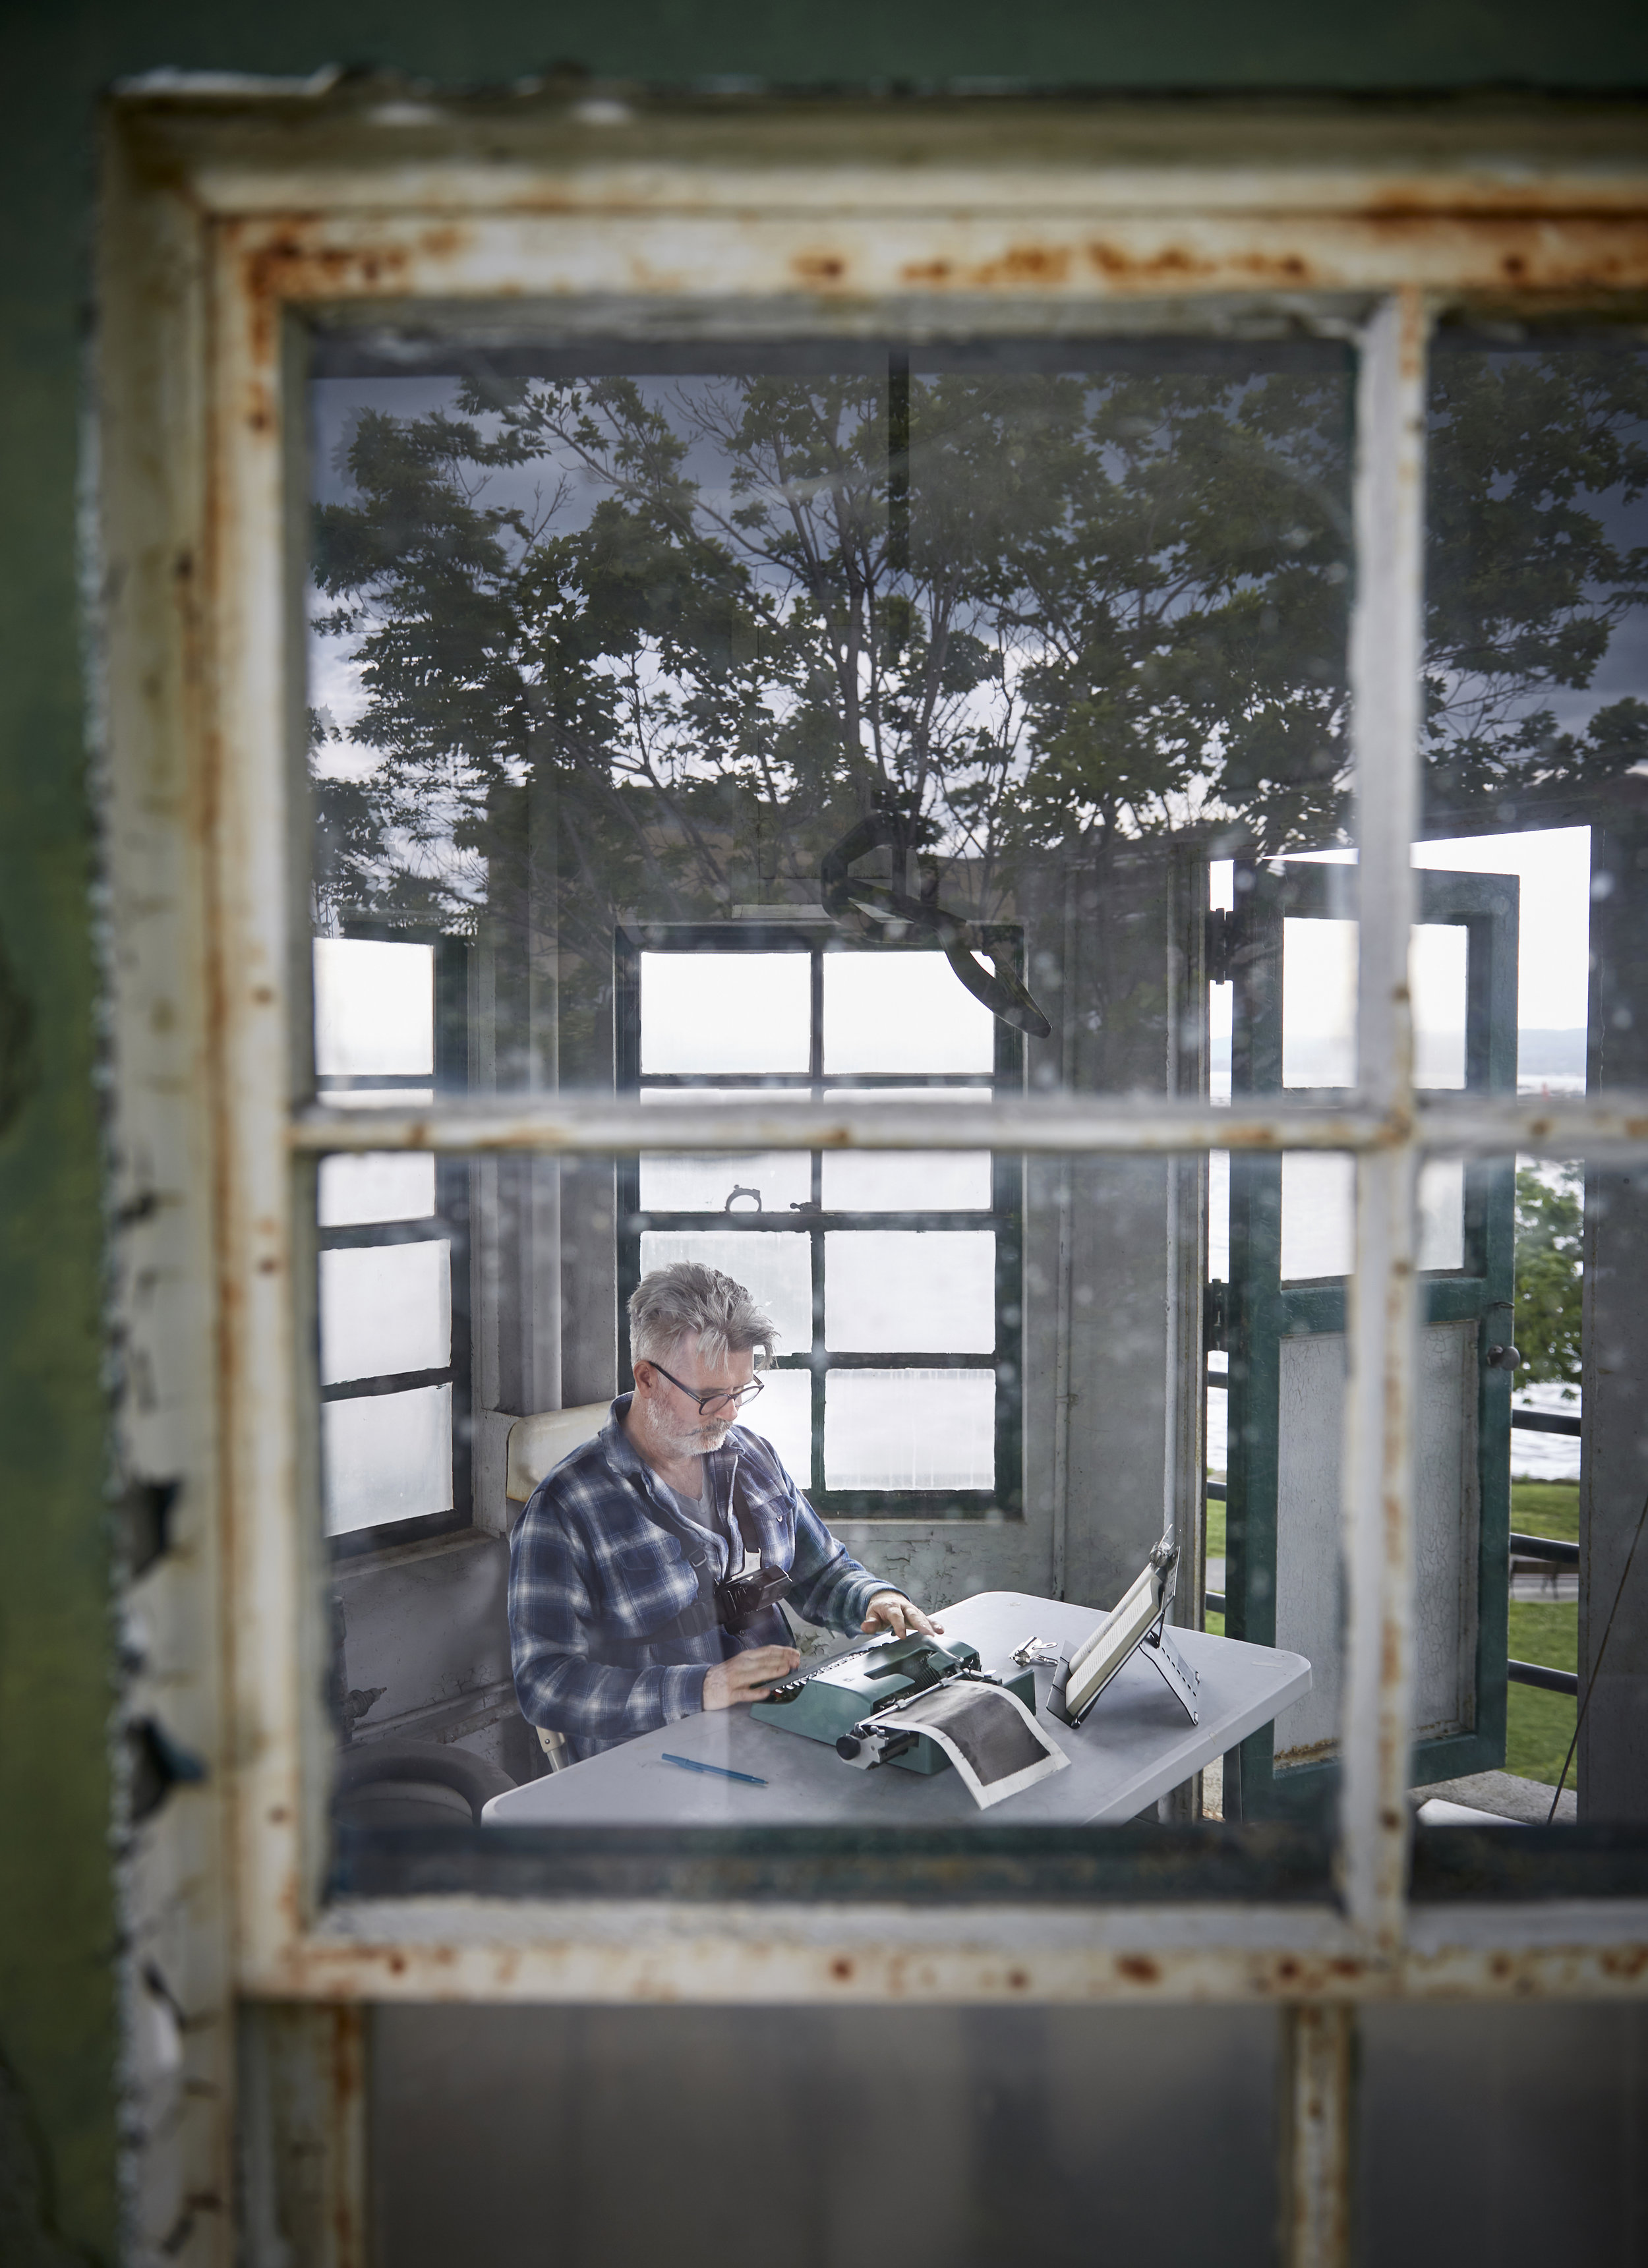 Tim Youd retyping John Cheever's 'Falconer'; 211 pages typed on an Olivetti Lettera 32 (decommissioned guard tower at Sing Sing Prison, Ossining, NY, June 2018). Photo credit: John Muggenborg.